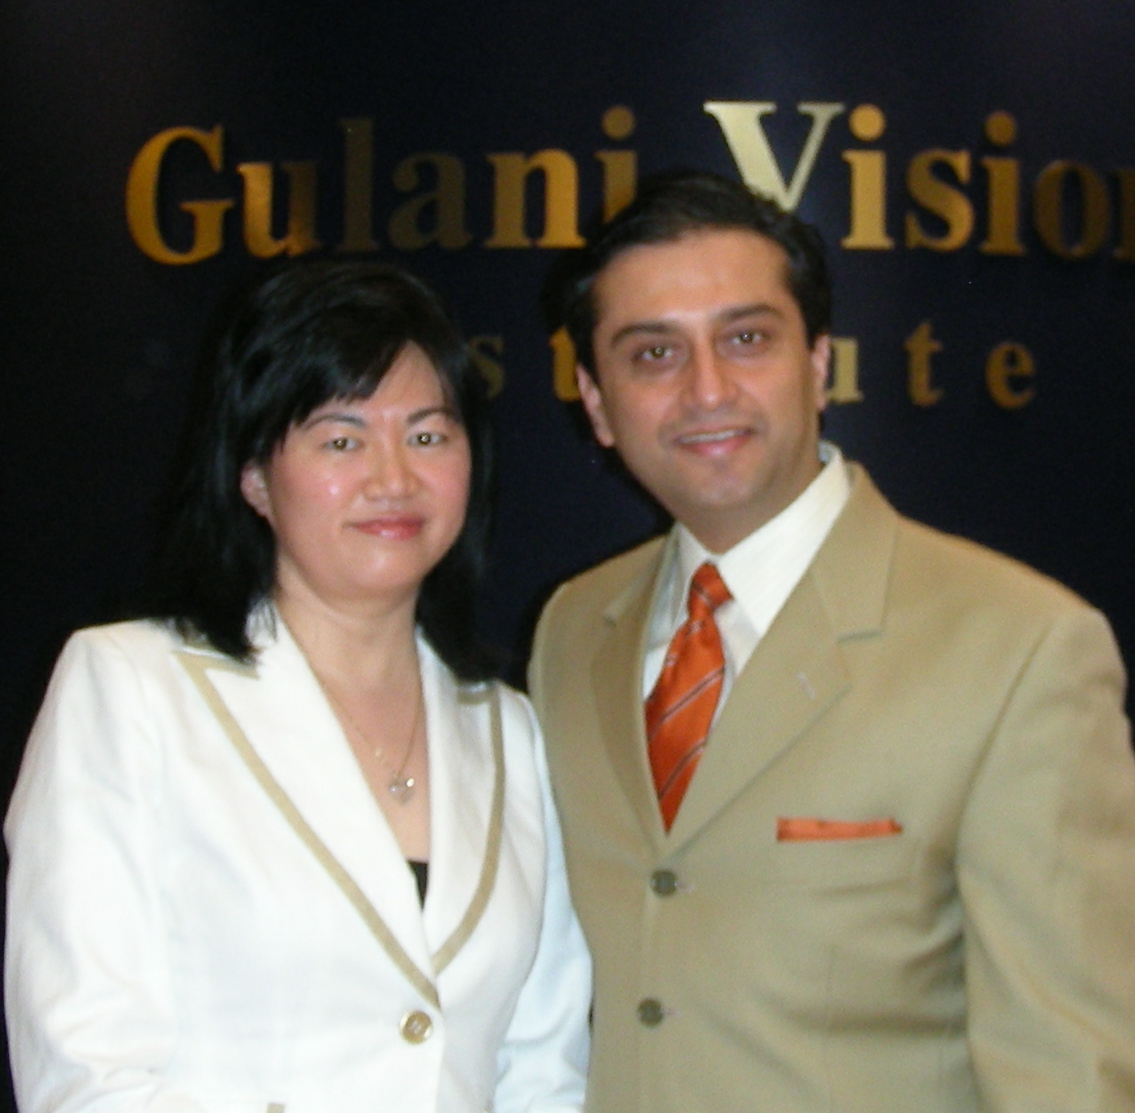 Dr.Jane Cai Advanced Cataract and Laser surgery Orlando Florida Gulani Vision Institute